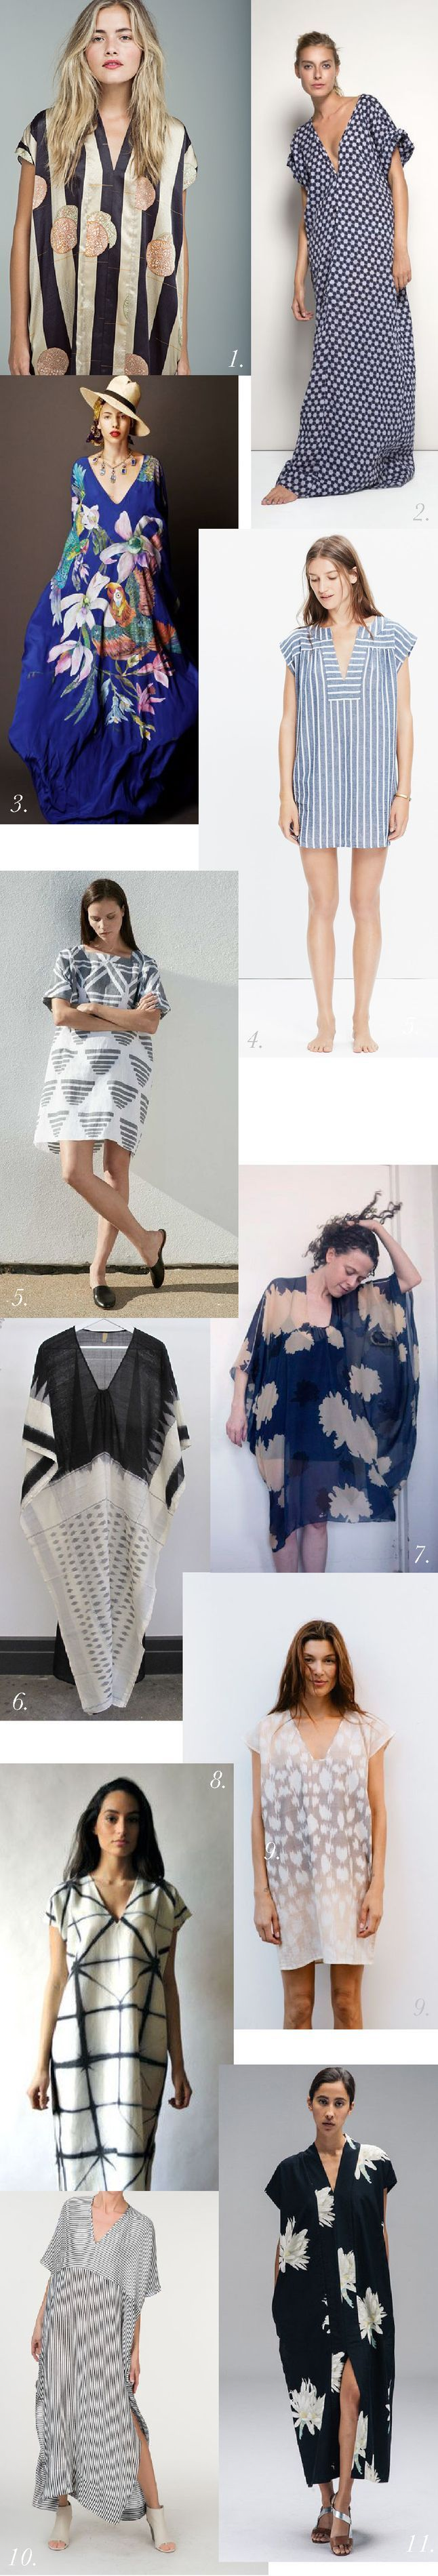 The Charlie Caftan Pattern: Inspiration & Styling